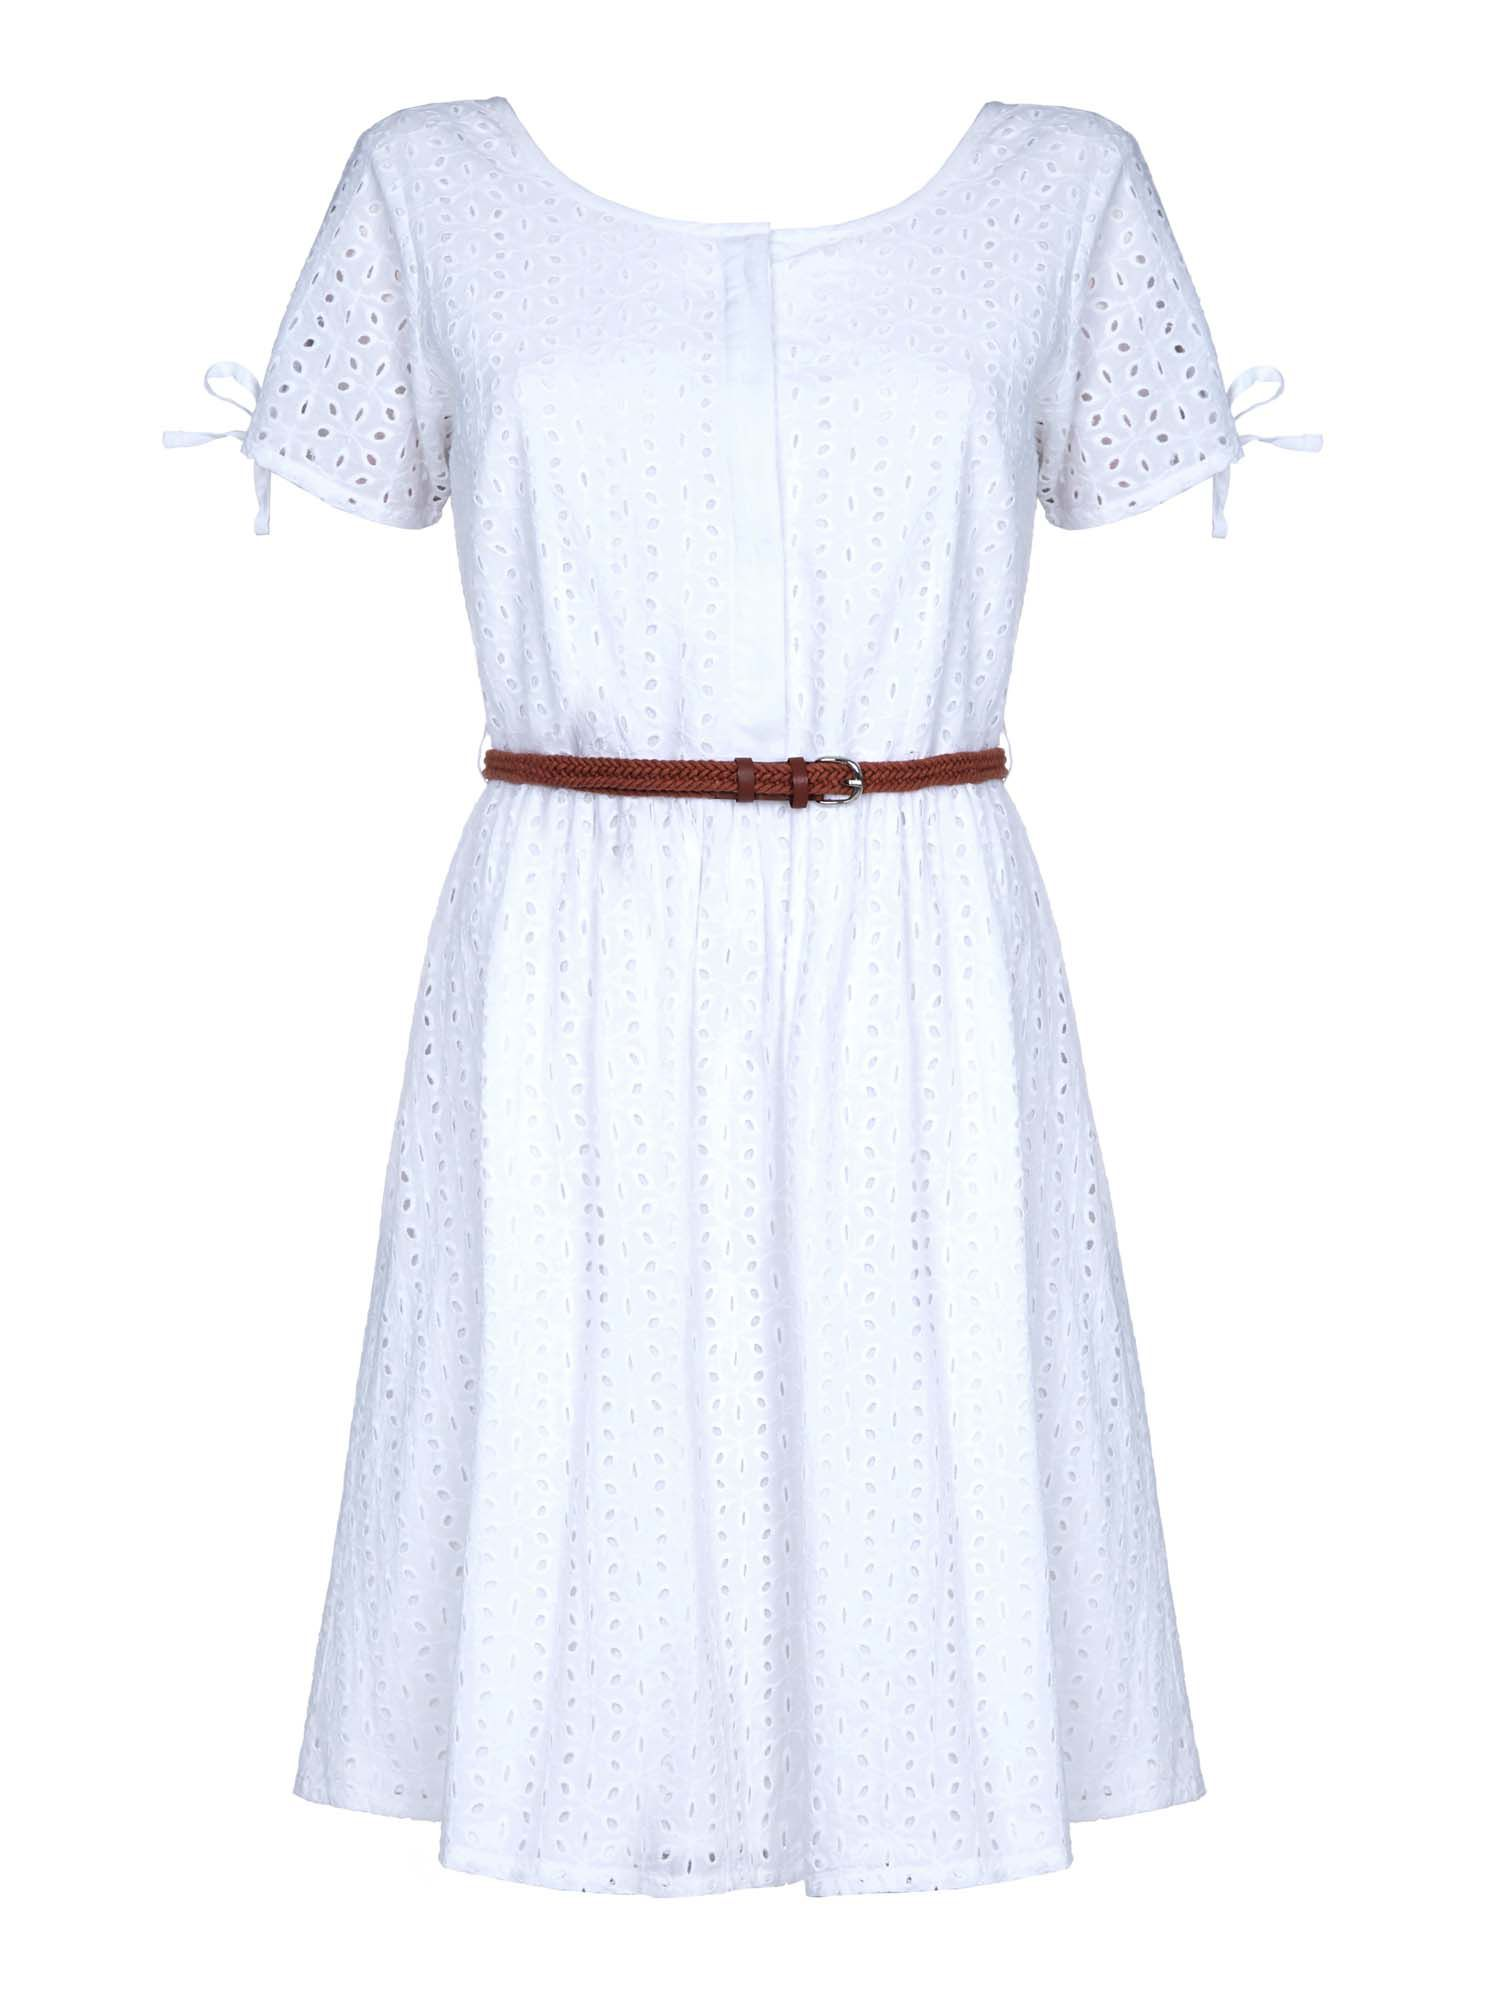 Yumi Broderie Anglaise Day Dress, Cream